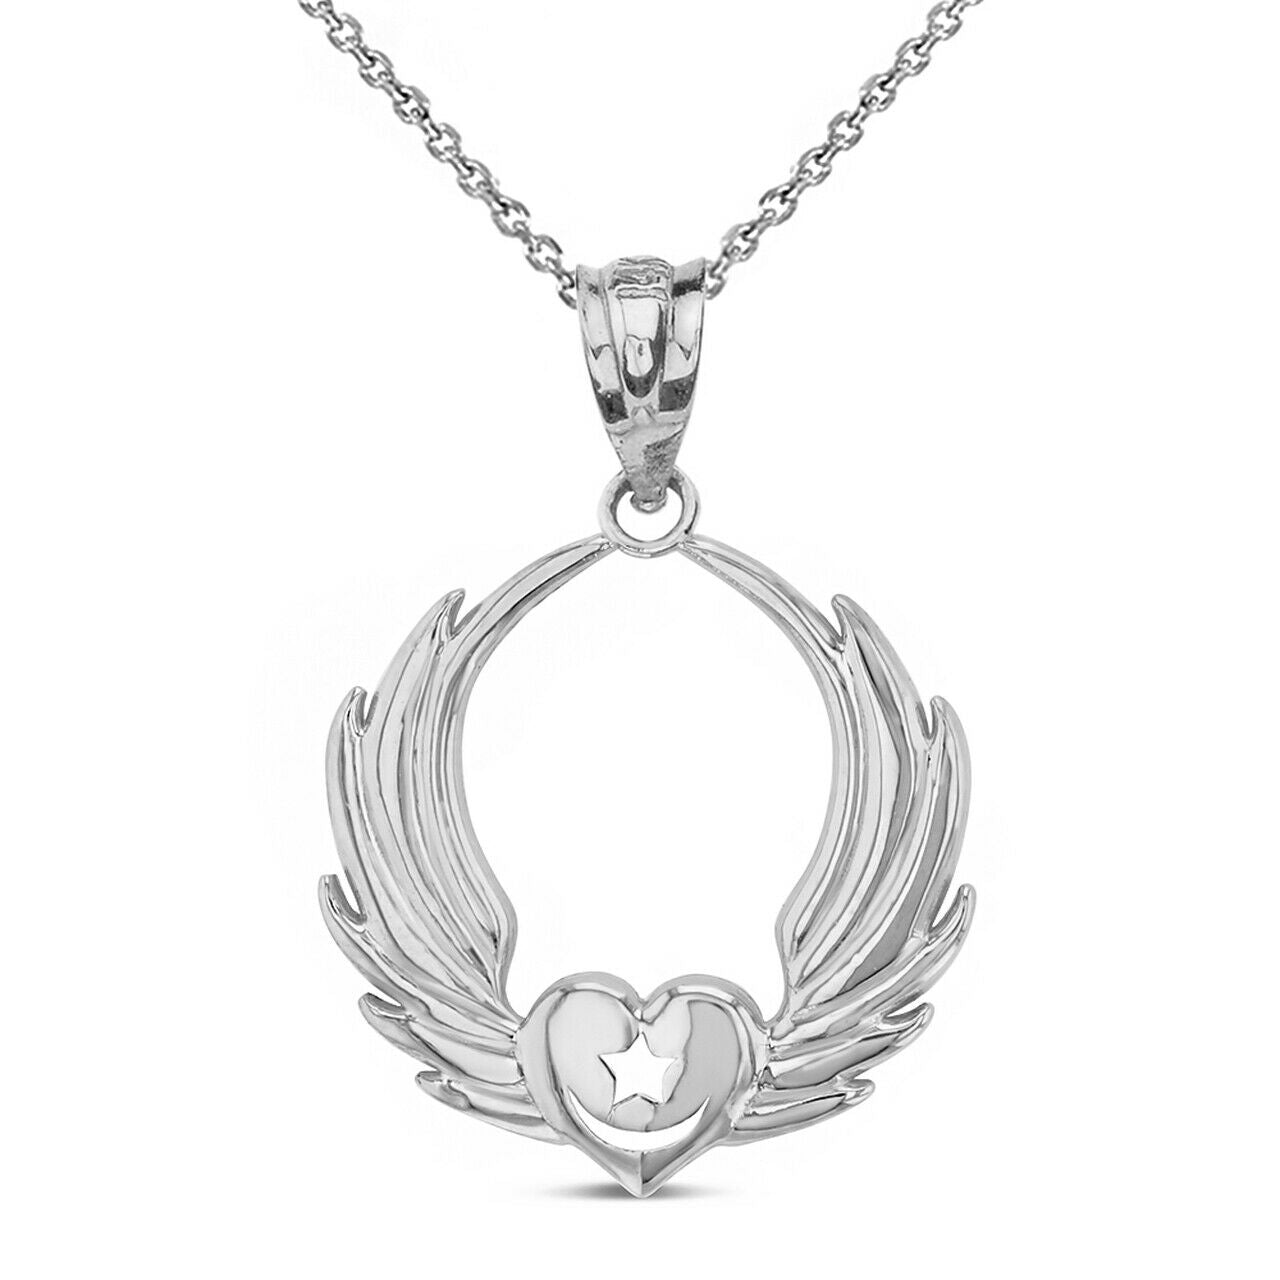 Sterling Silver Winged Heart Star & Crescent Islam Sufi Order Pendant Necklace